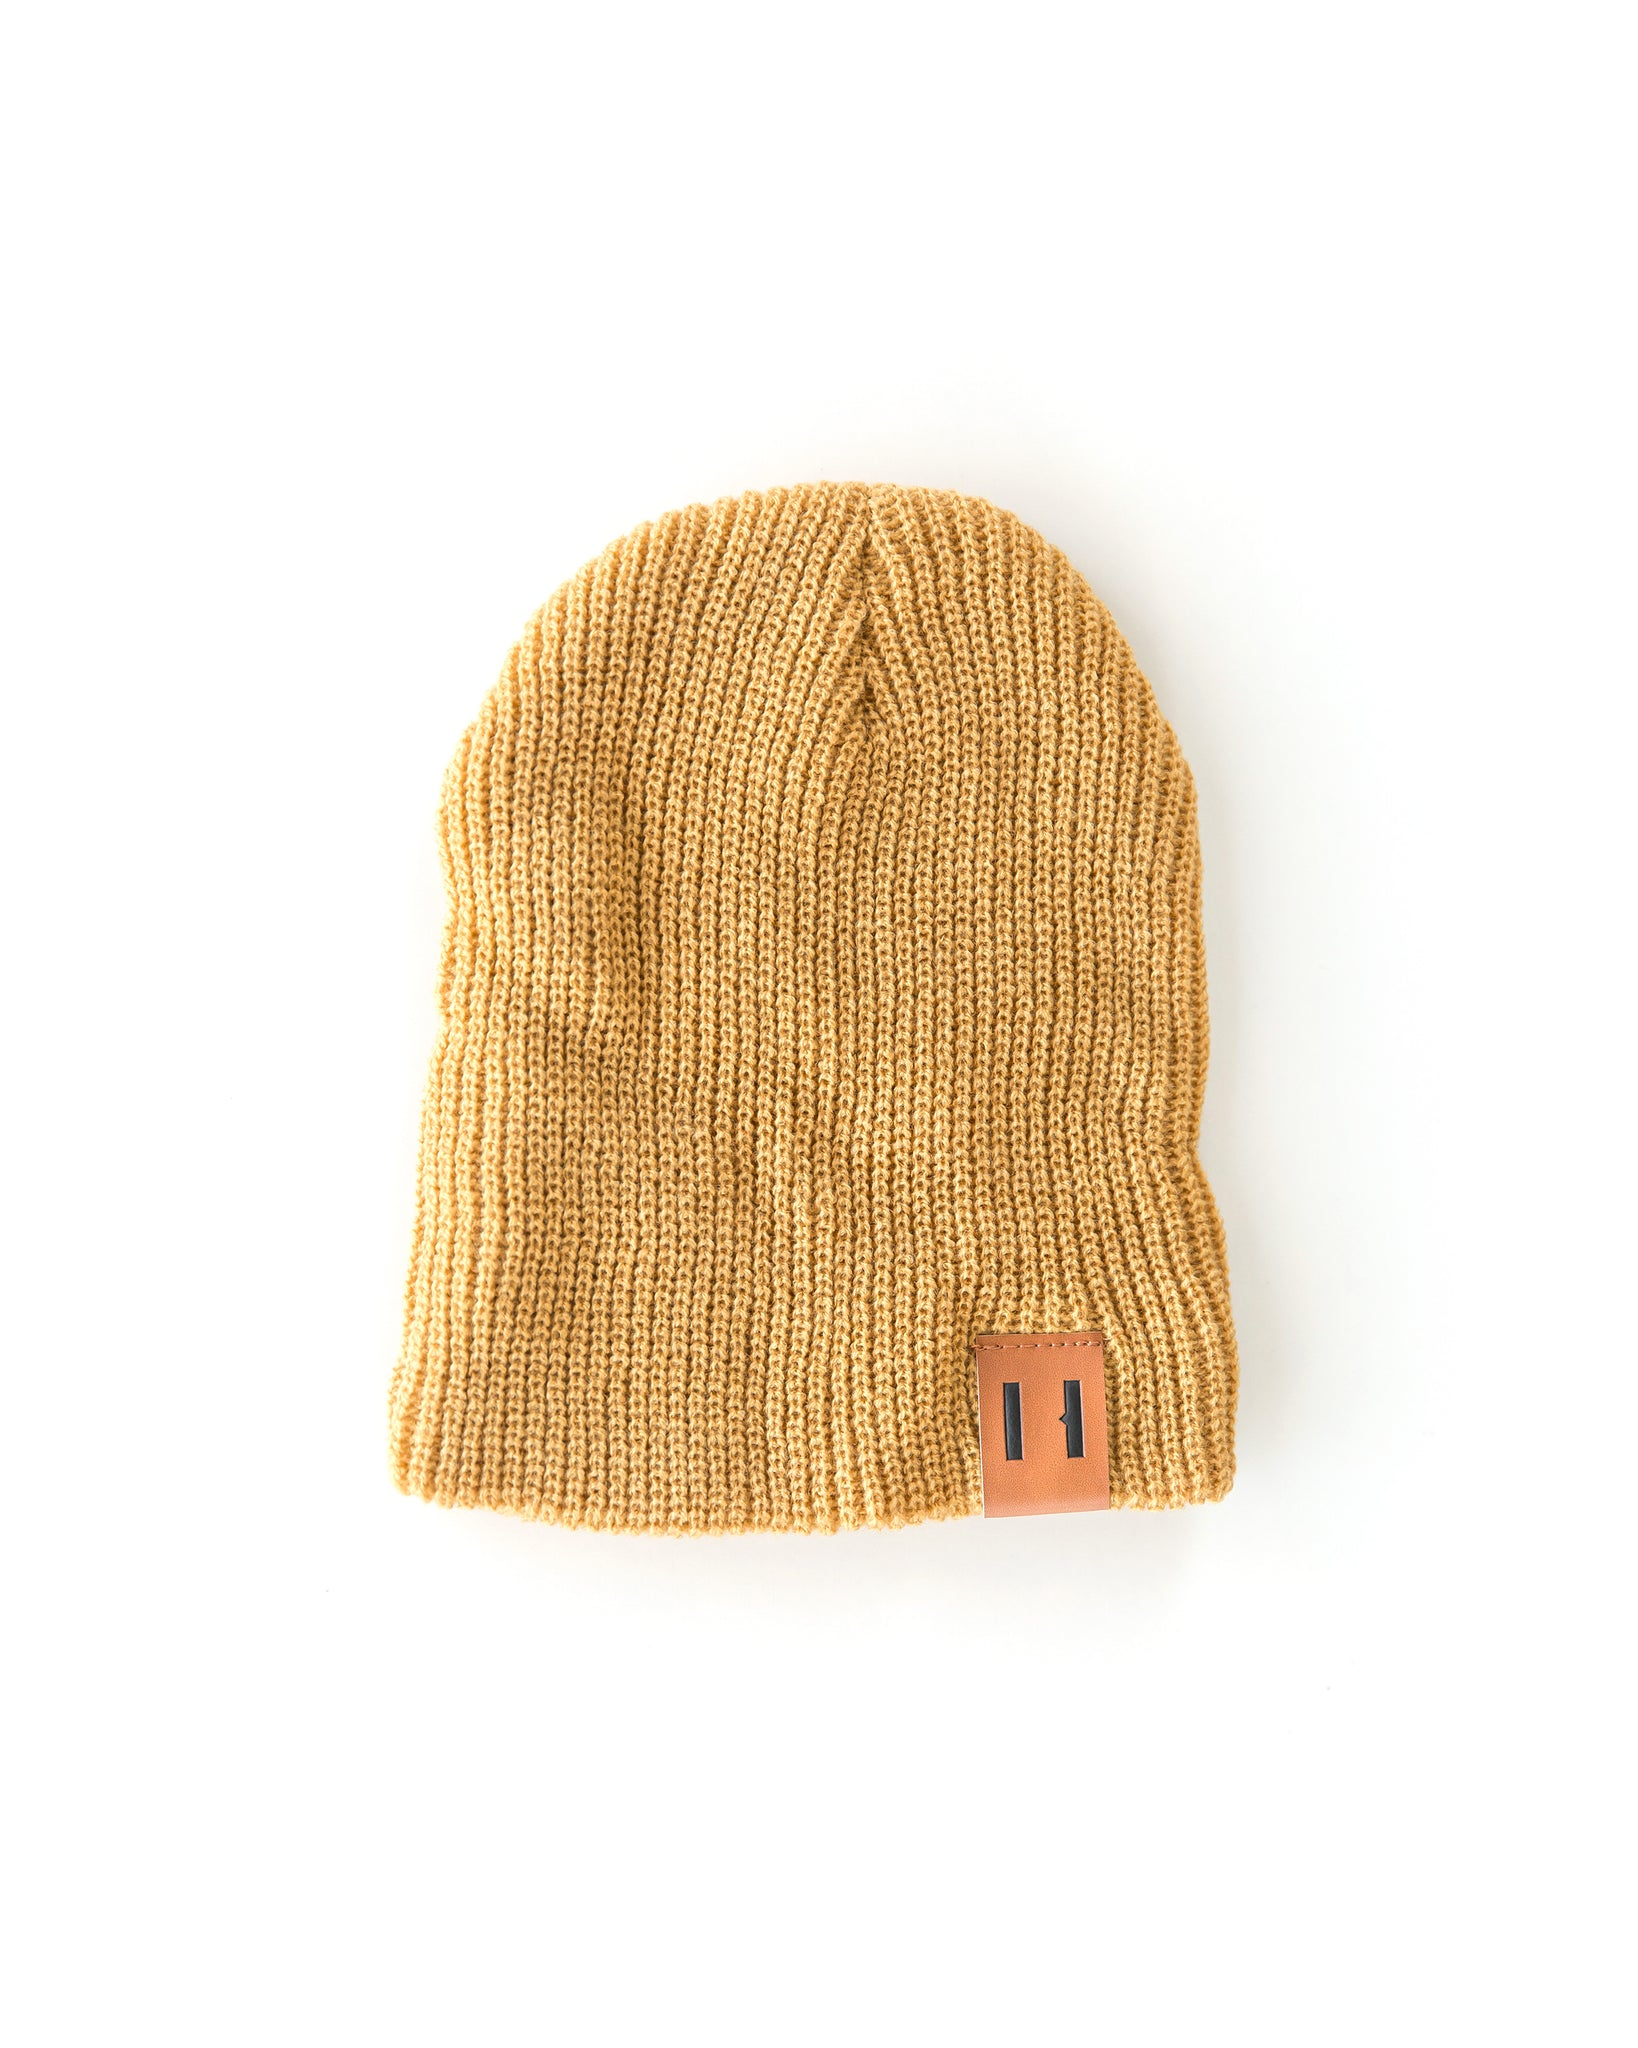 Daddy & Me Dude Beanie in Mustard Yellow - Reverie Threads